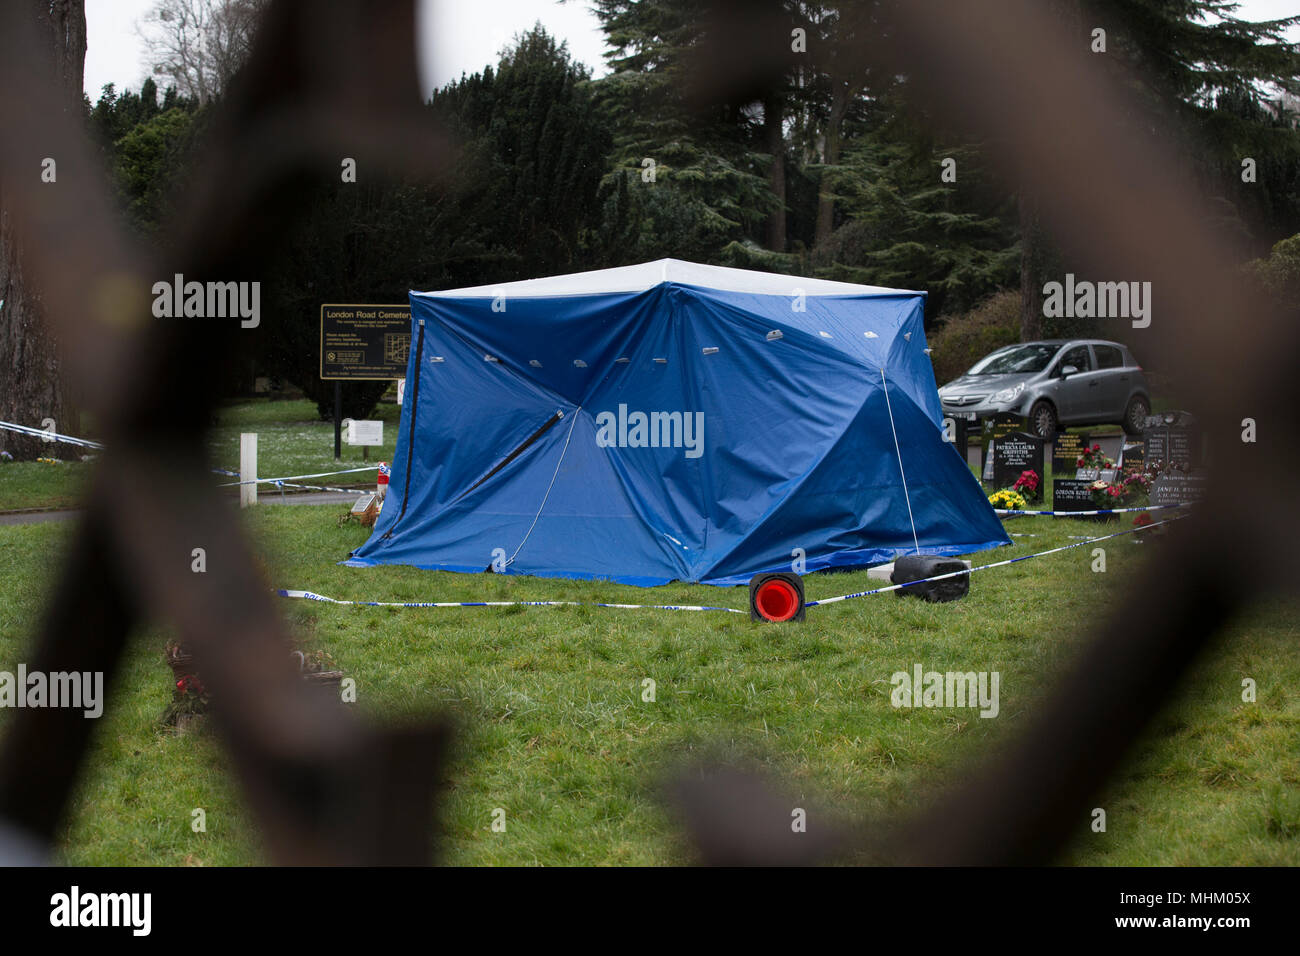 Salisbury Cemetery where Sergei Skripal's wife was buried on Devizes Road, chemical forensics investigate after the nerve agent attack in Salisbury UK - Stock Image